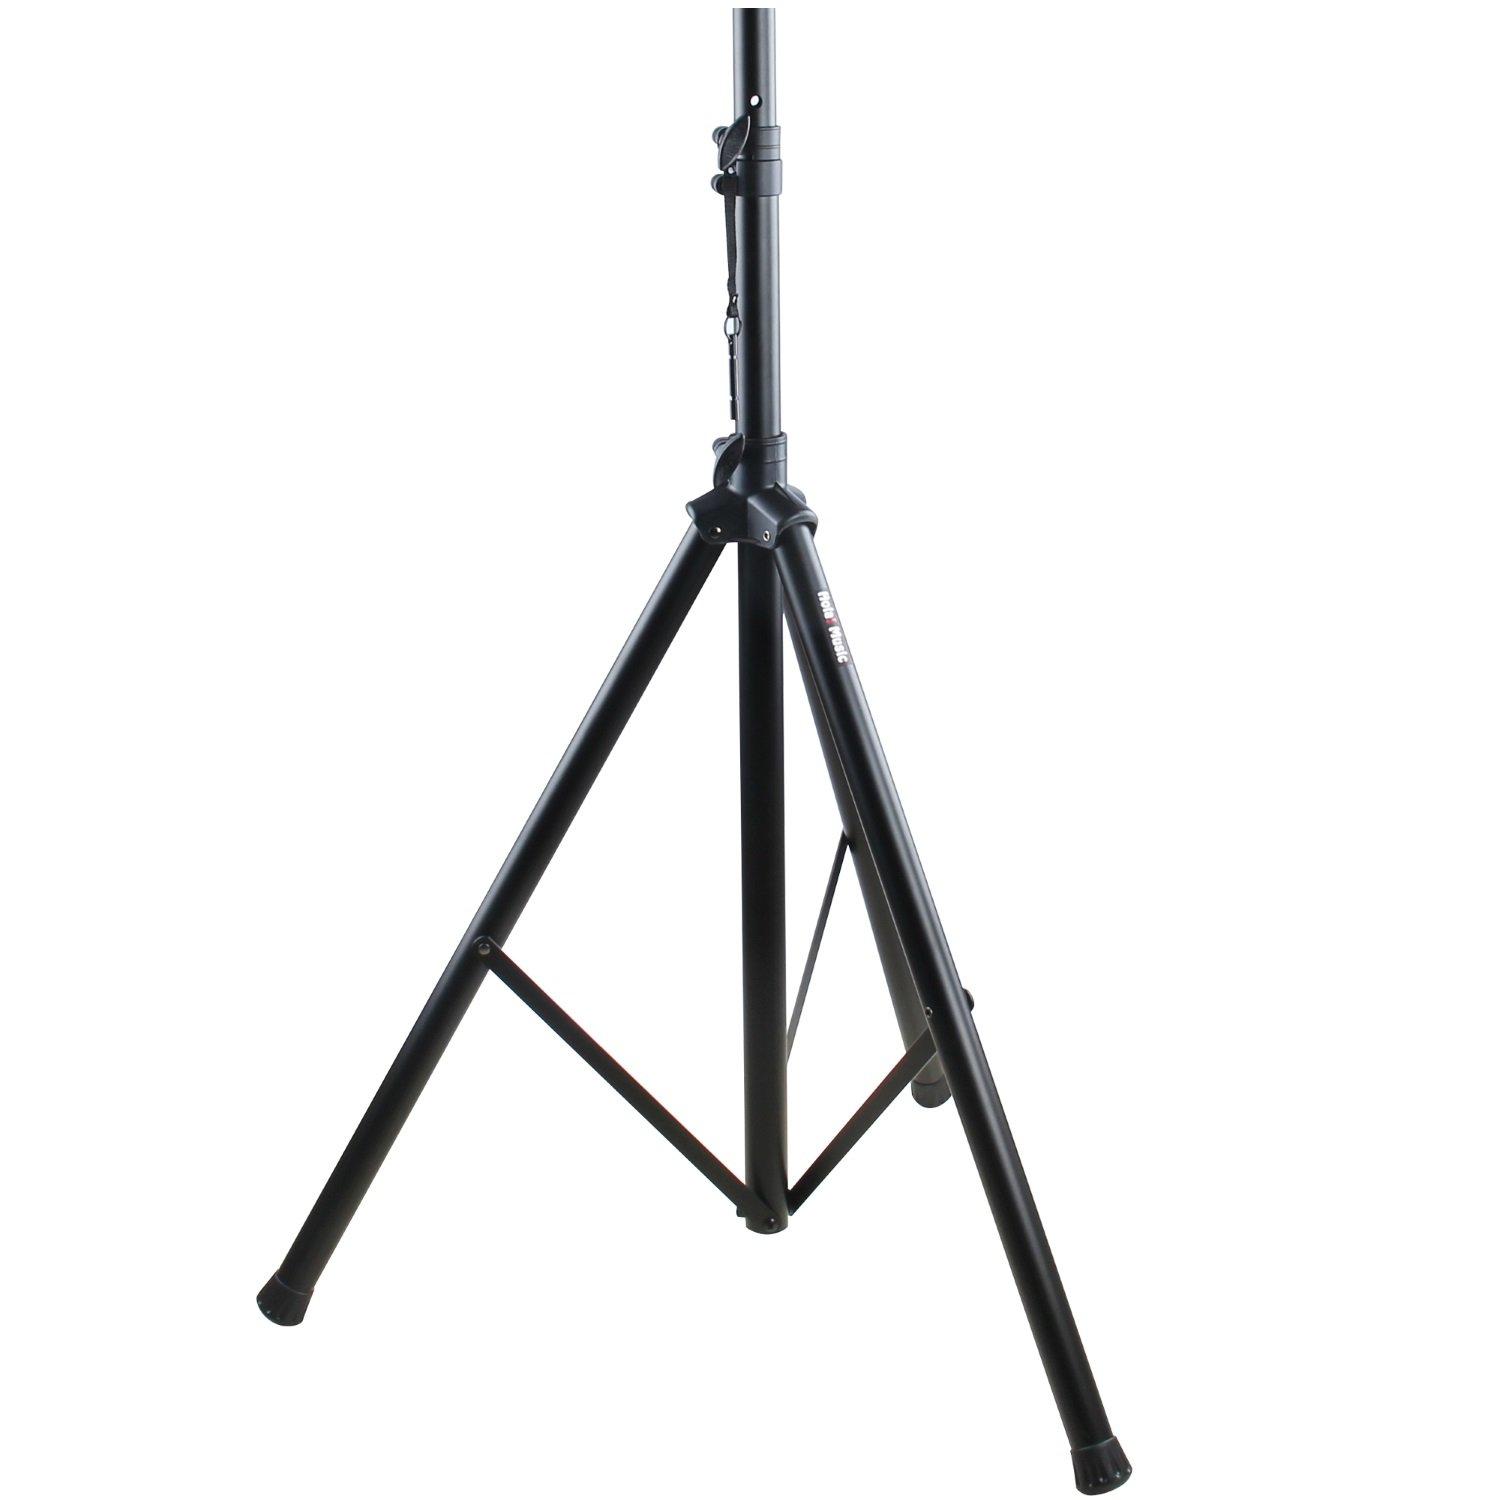 PA Speaker Stand by Hola! Music, Professional Tripod Structure, 4-6ft Adjustable Height, Model HPS-200S